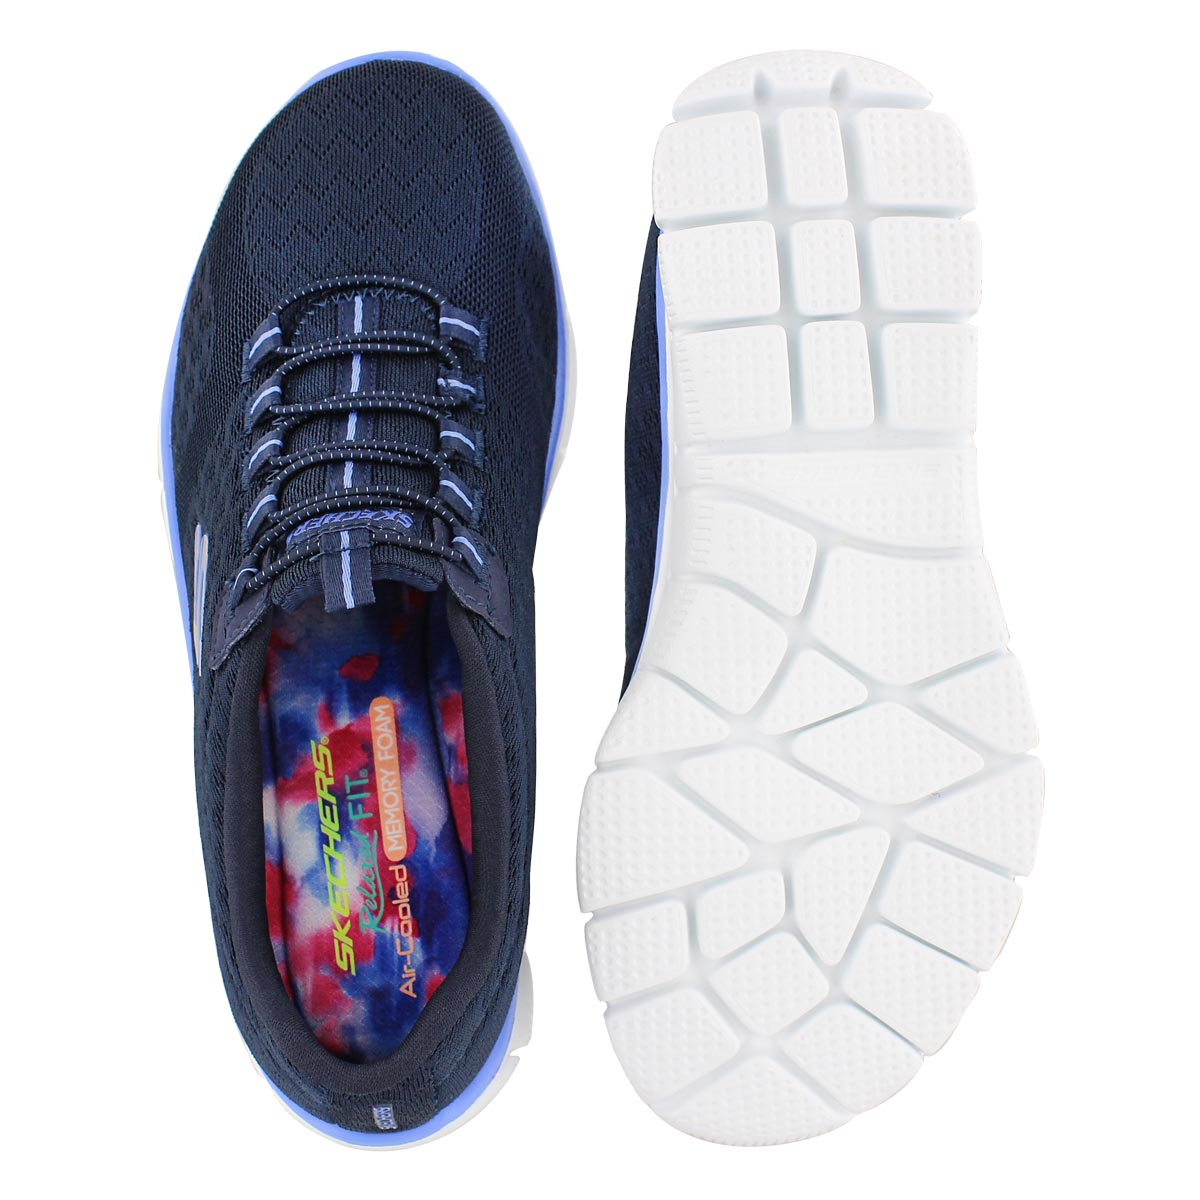 Lds Ocean View navy bungee running shoe